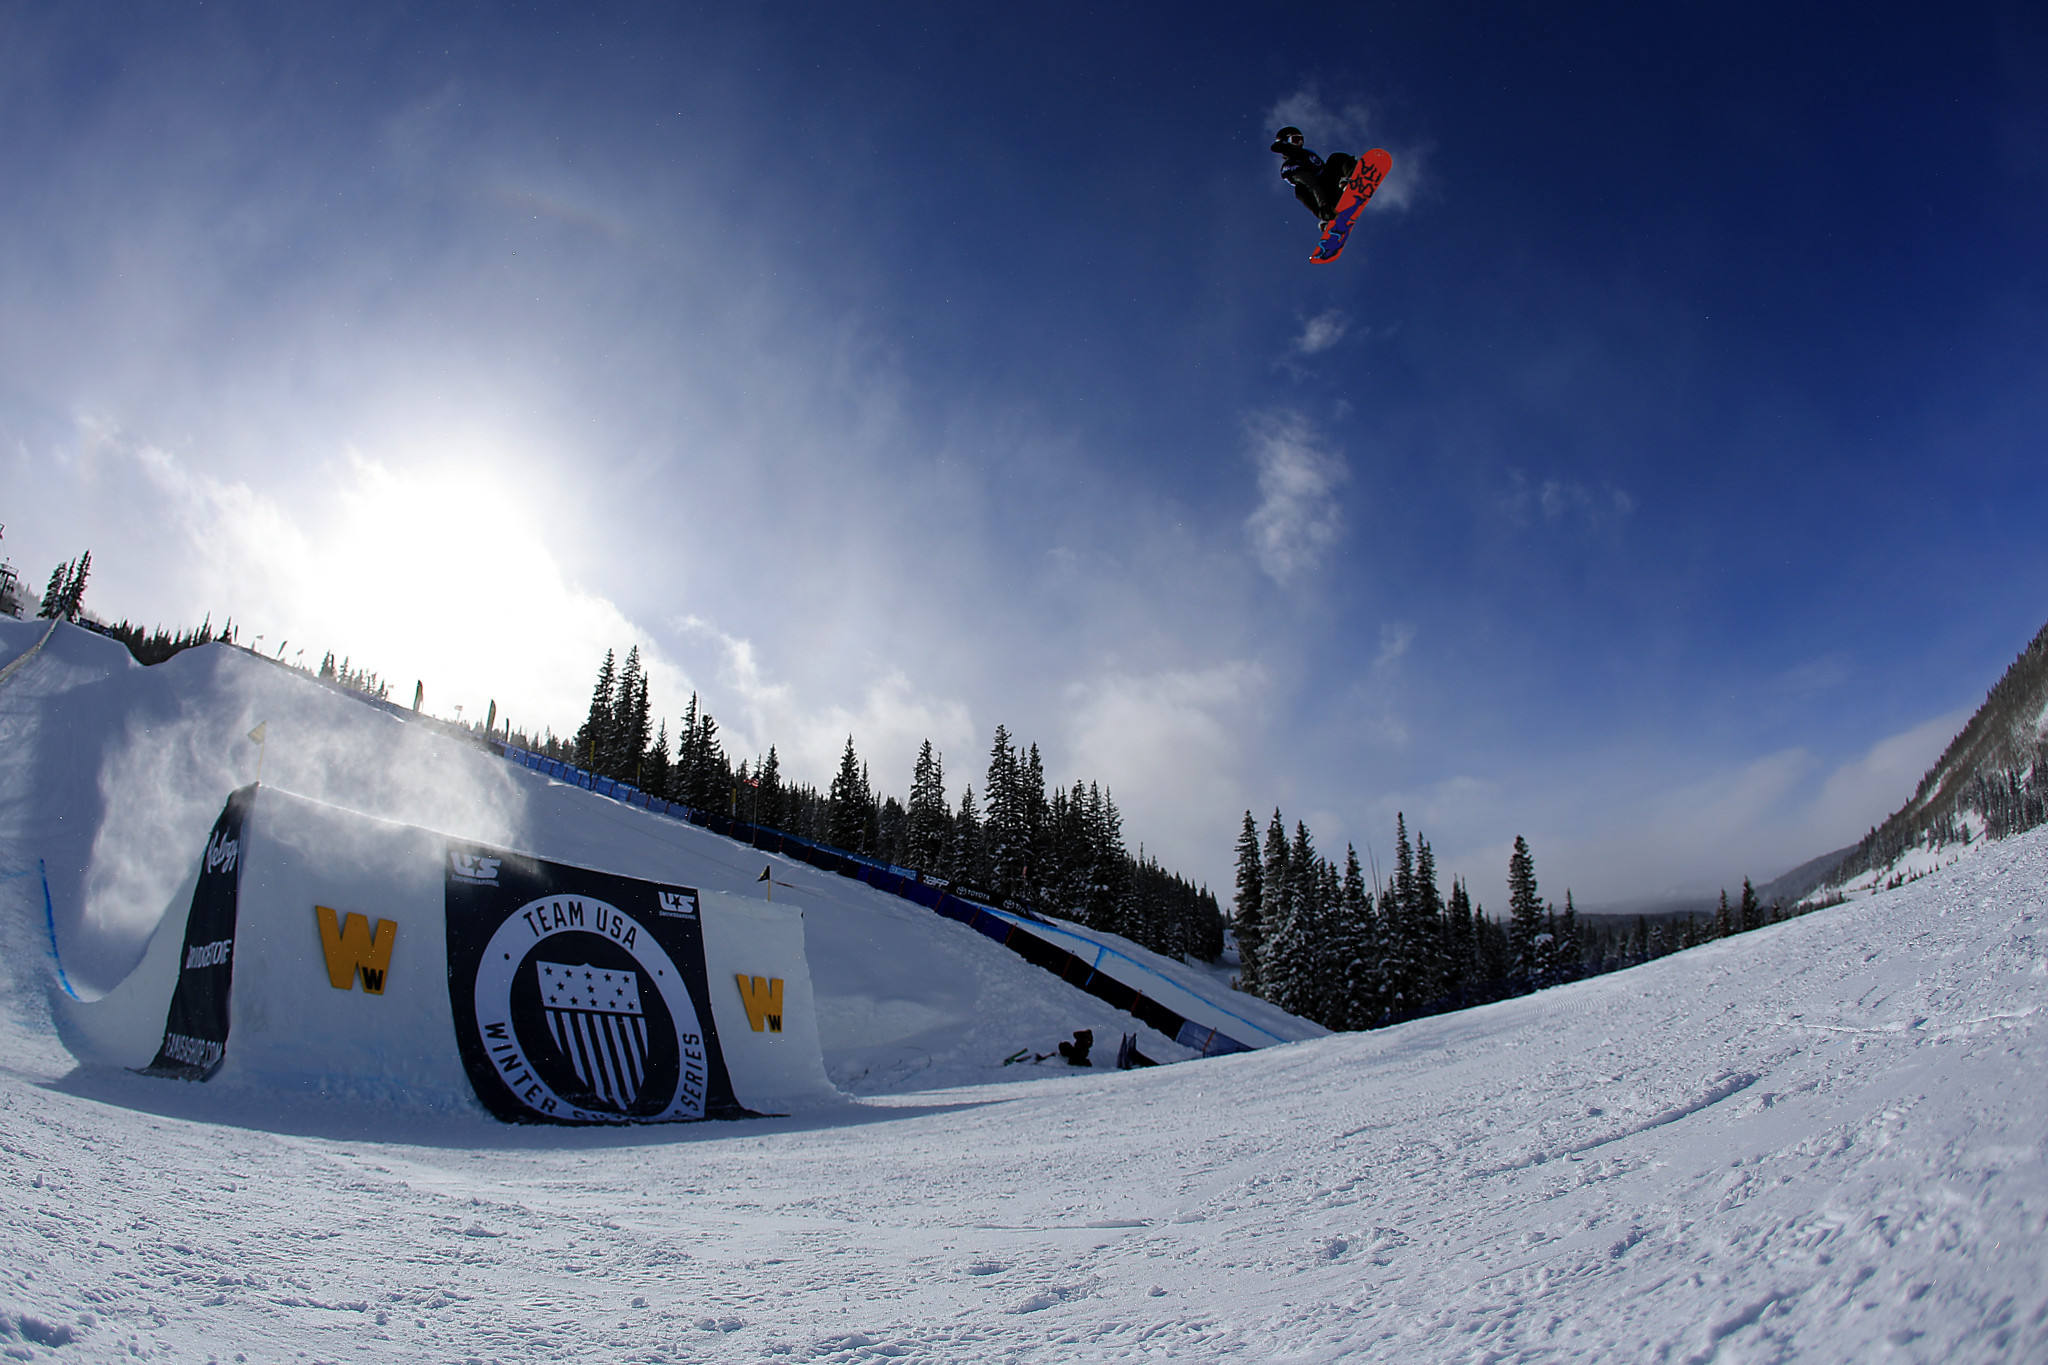 Big air snowboarding will make its Olympic debut at Beijing 2022 ©Getty Images